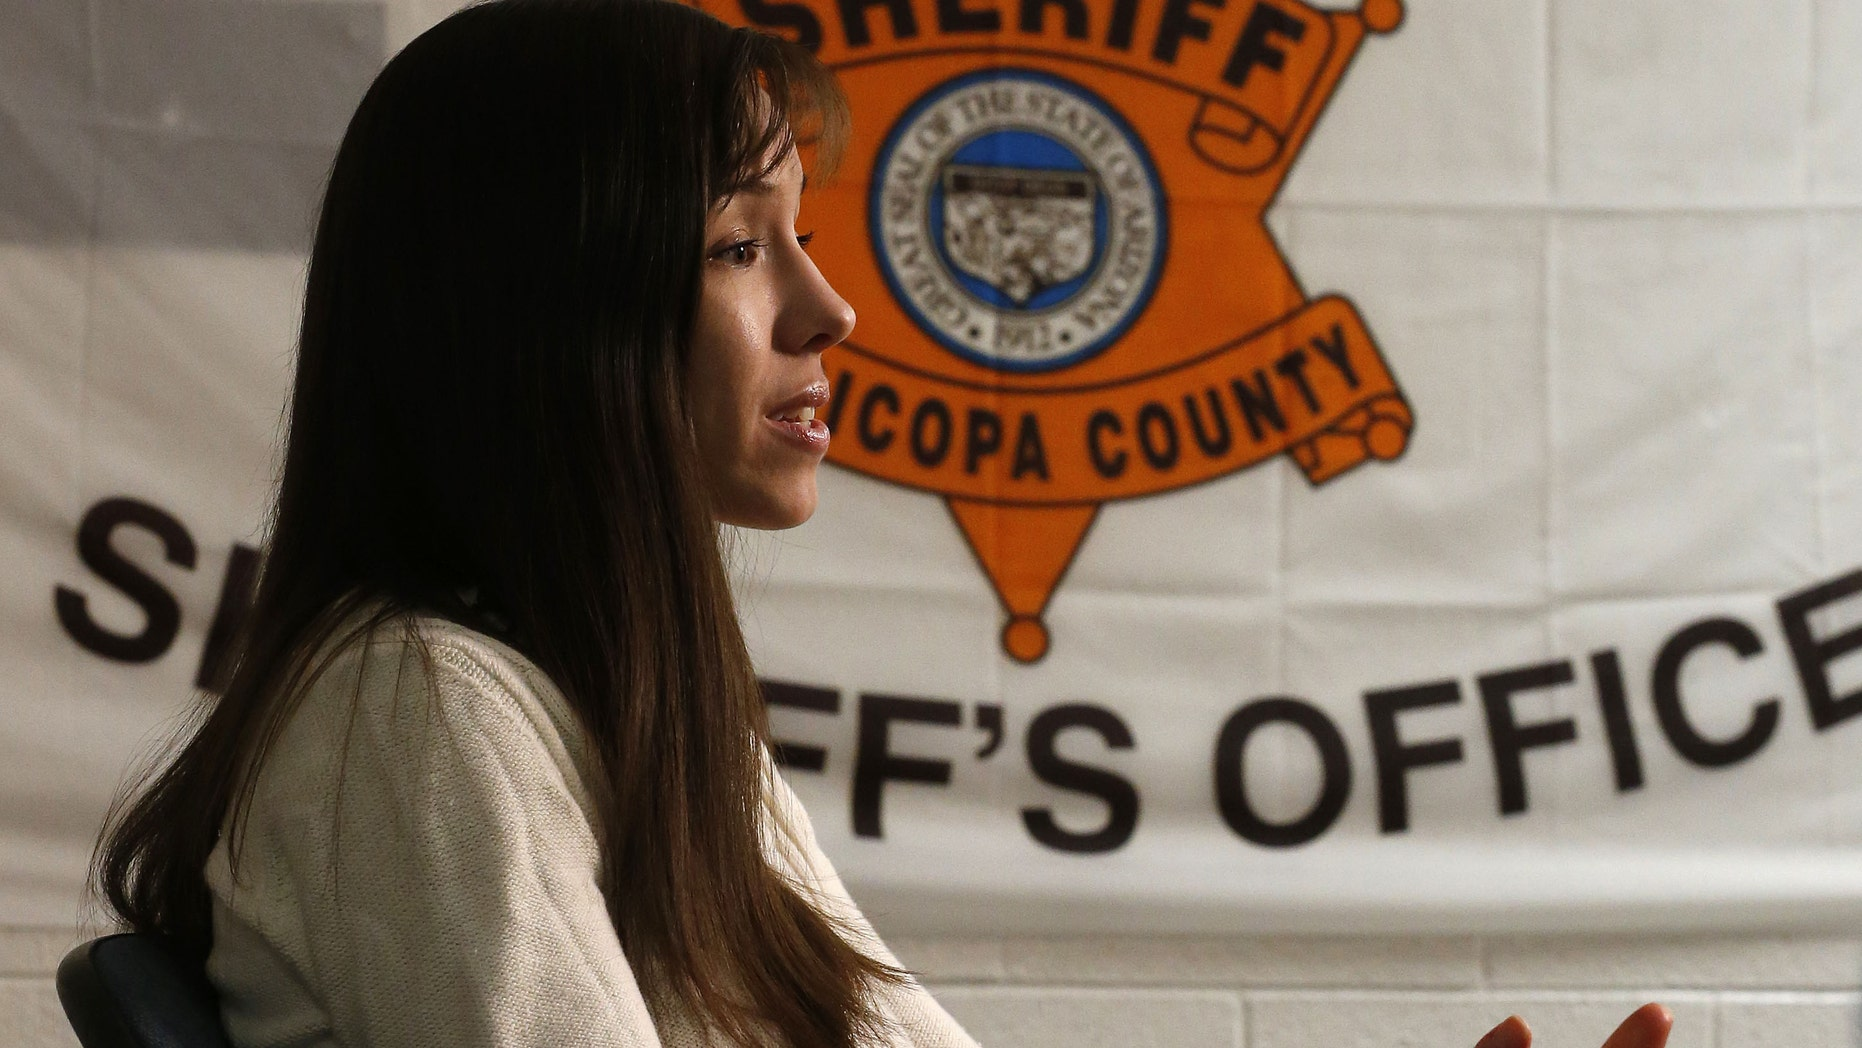 Convicted killer Jodi Arias during an interview at the Maricopa County Estrella Jail on Tuesday, May 21, 2013, in Phoenix.